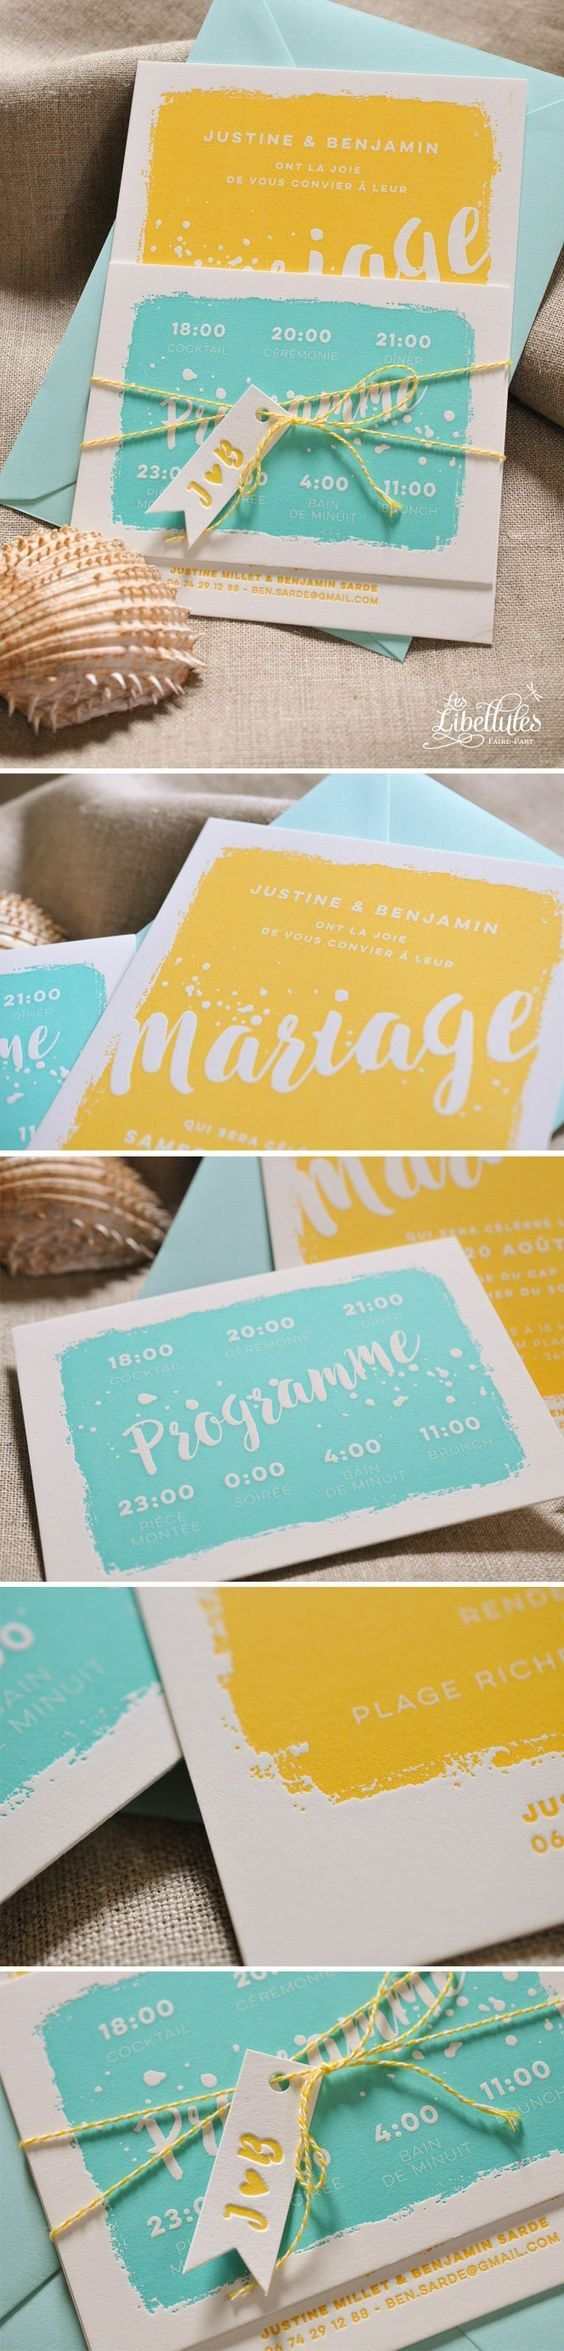 mint and yellow wedding invitations / http://www.himisspuff.com/mint-and-yellow-wedding-ideas/